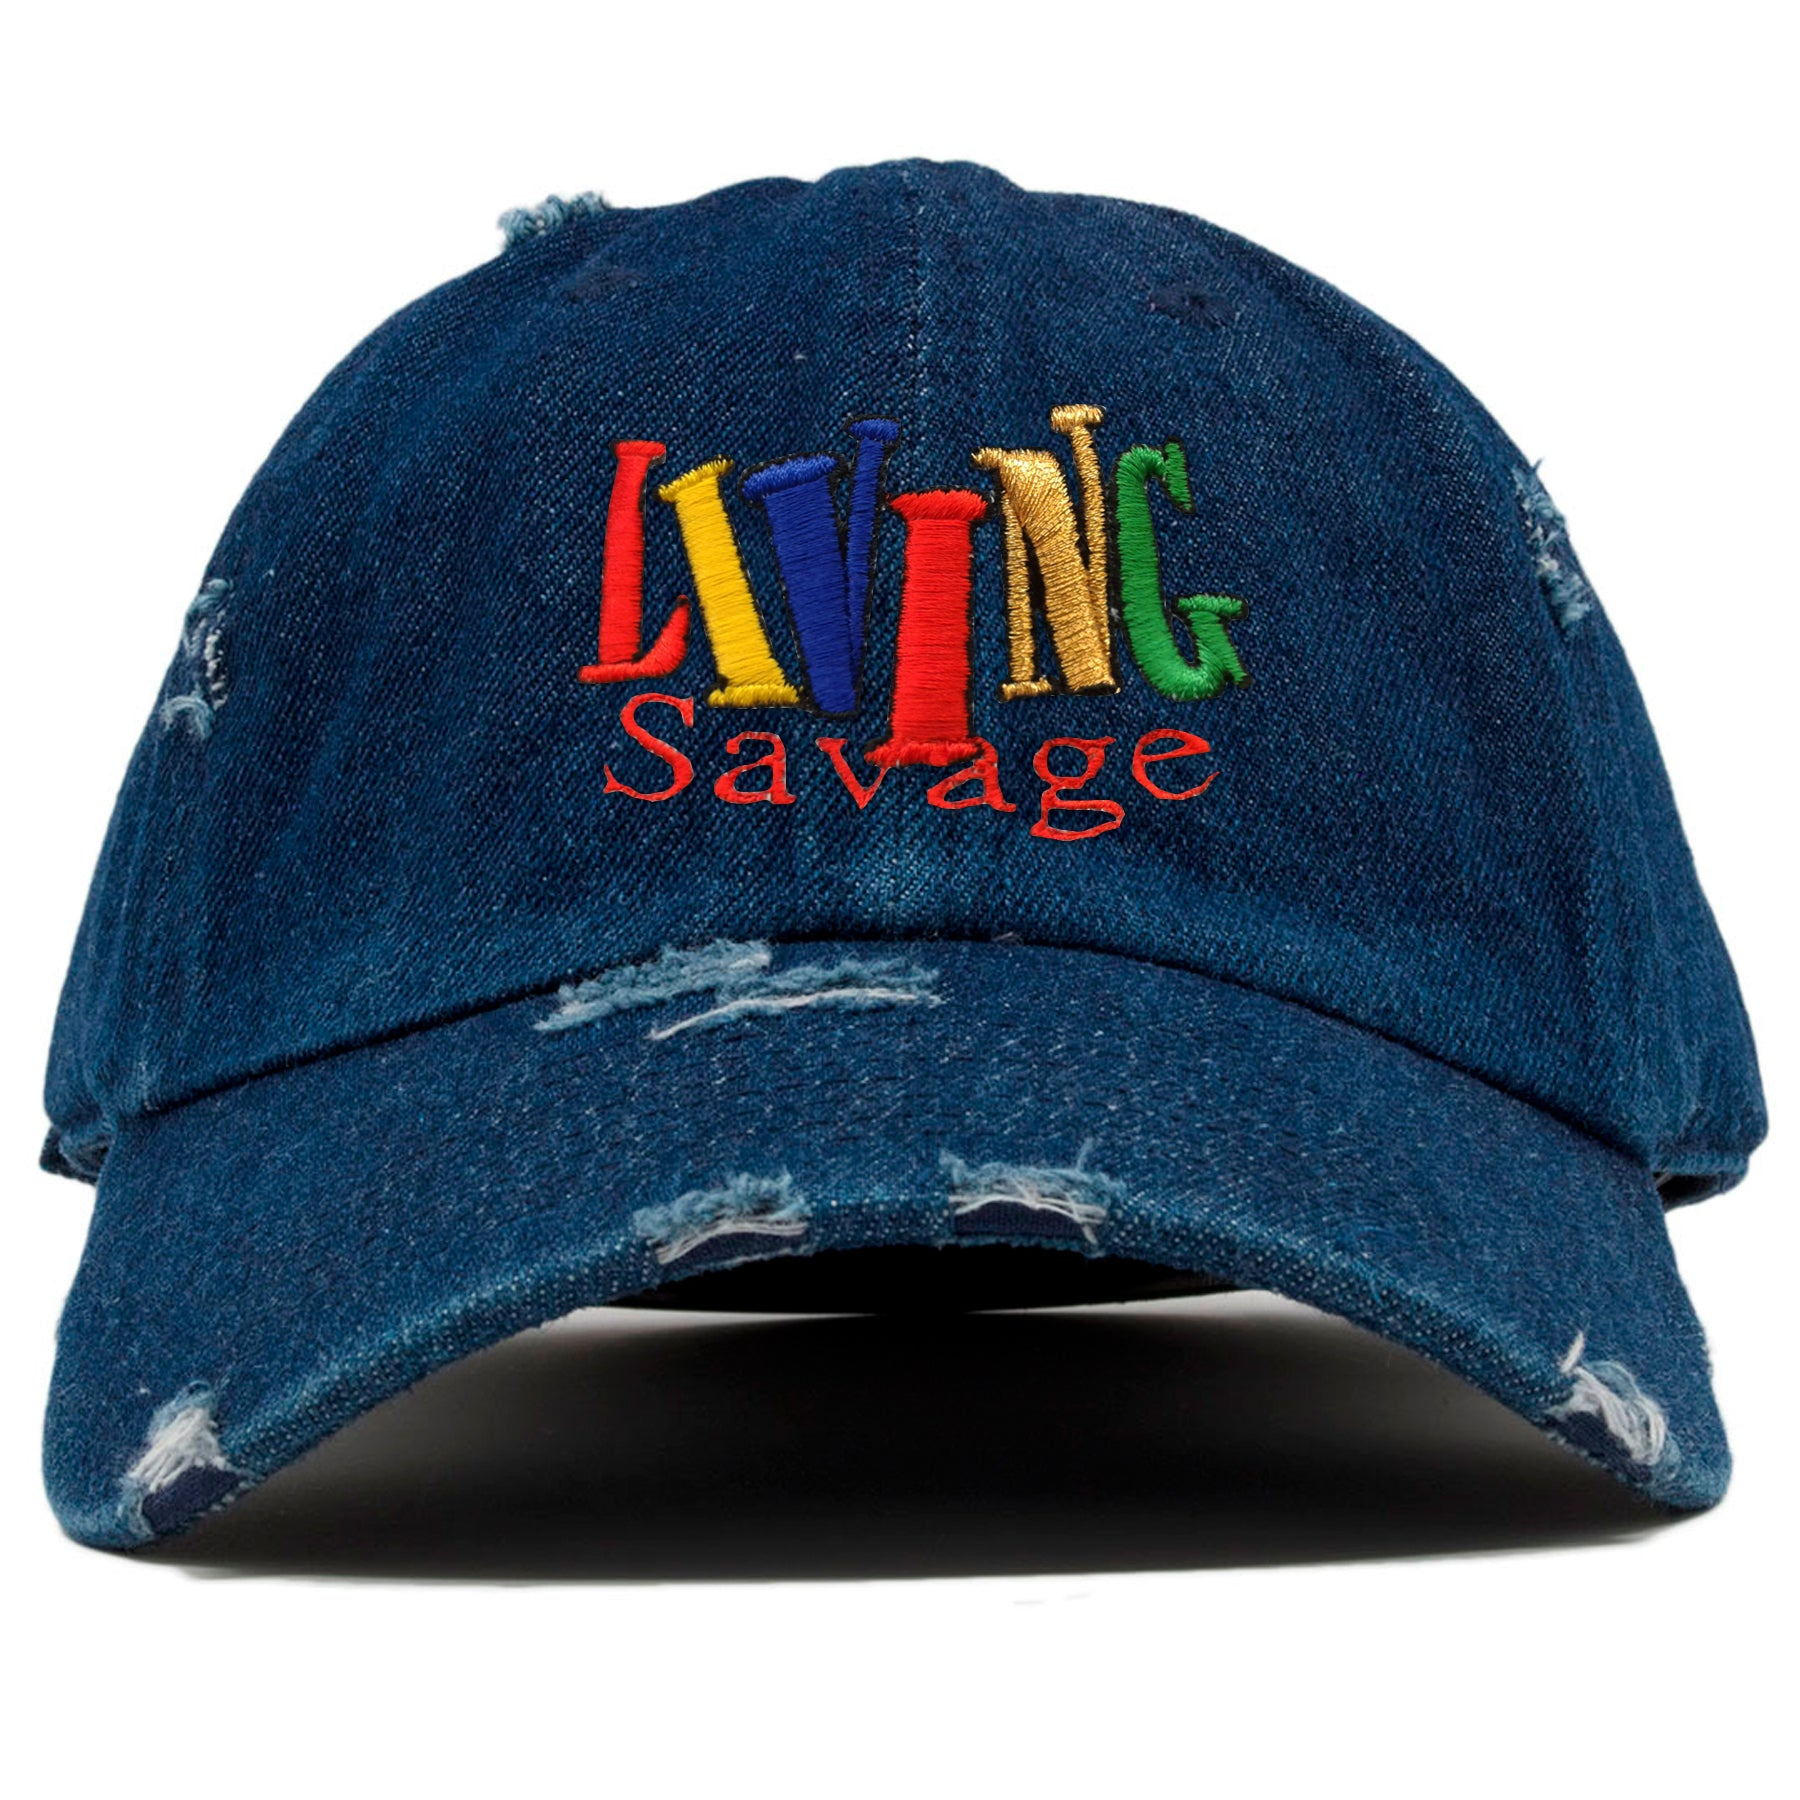 704902f1 the front of the living savage dad hat has the living savage logo  embroidered